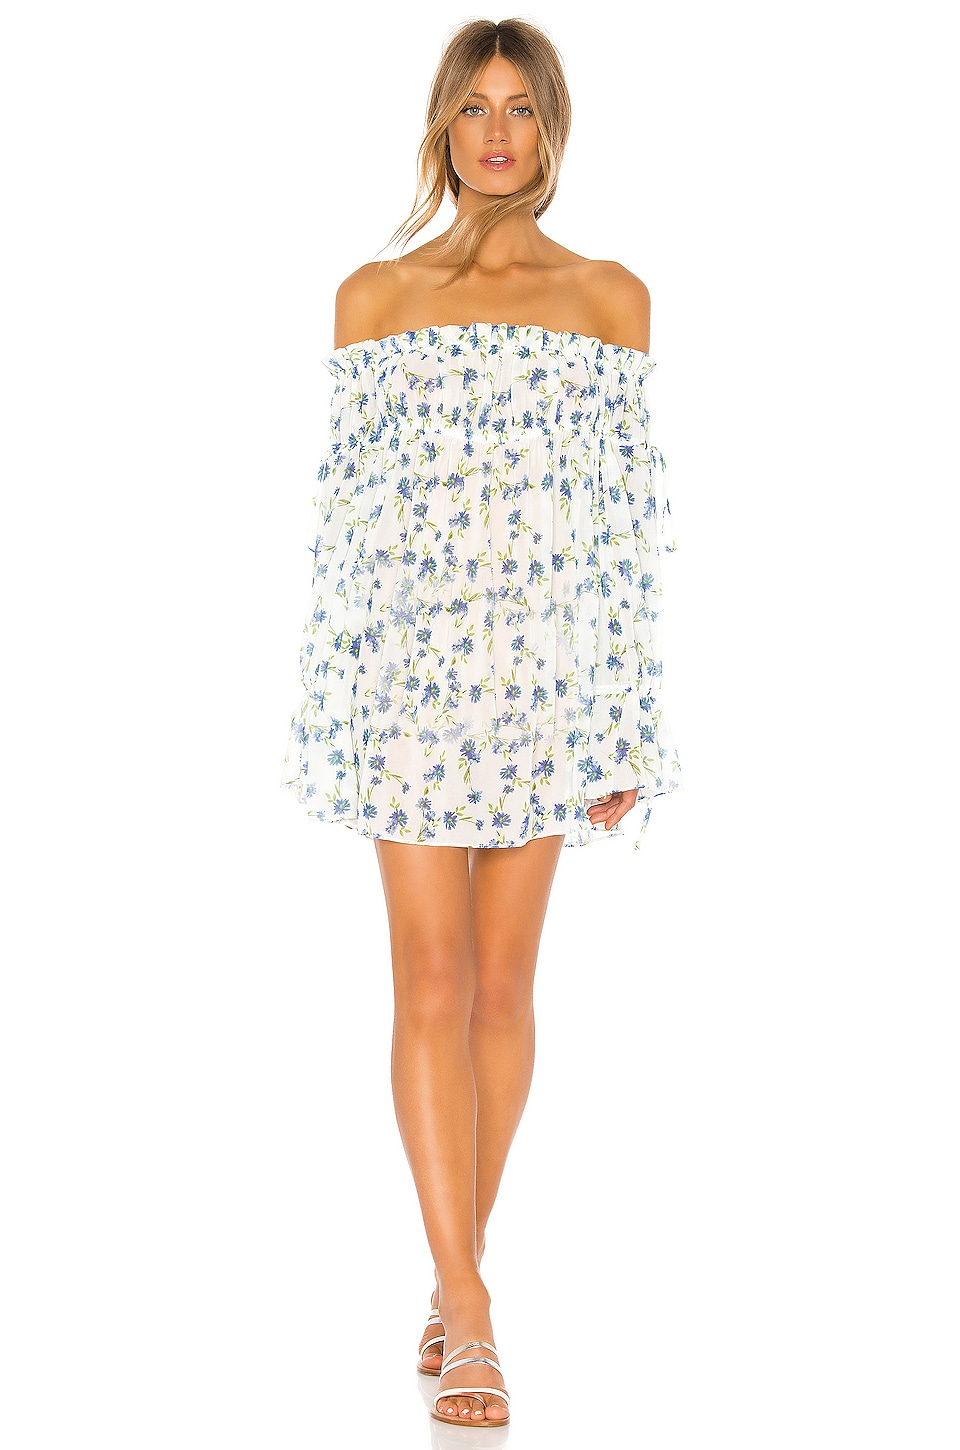 Tularosa Brogan Mini Dress in Forget Me Not Floral